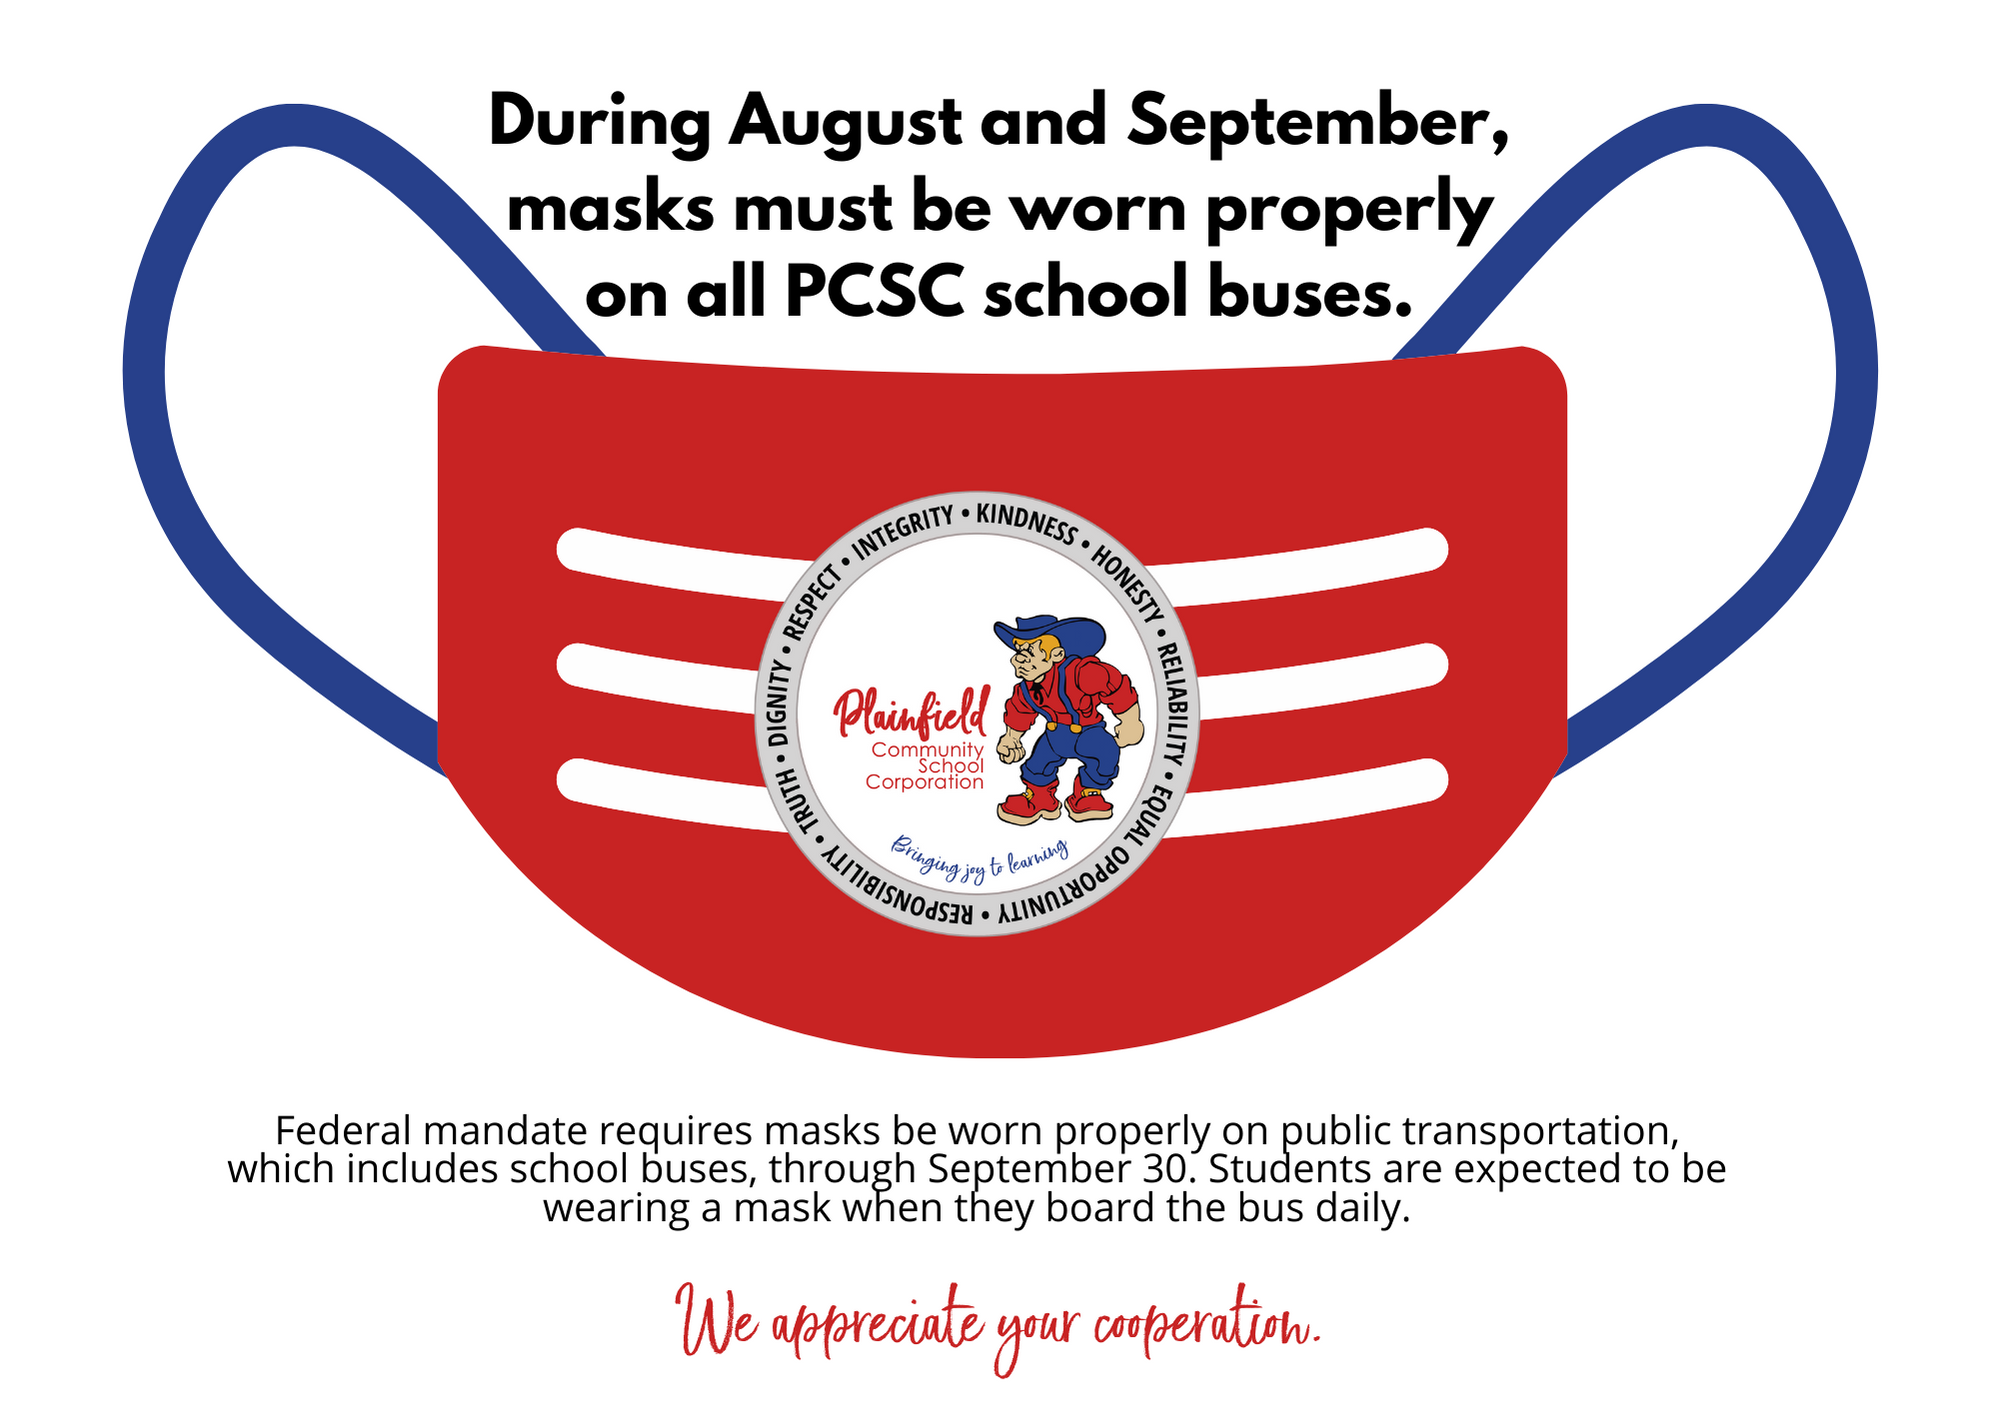 Masks are required on school buses, per federal mandate, through August and September